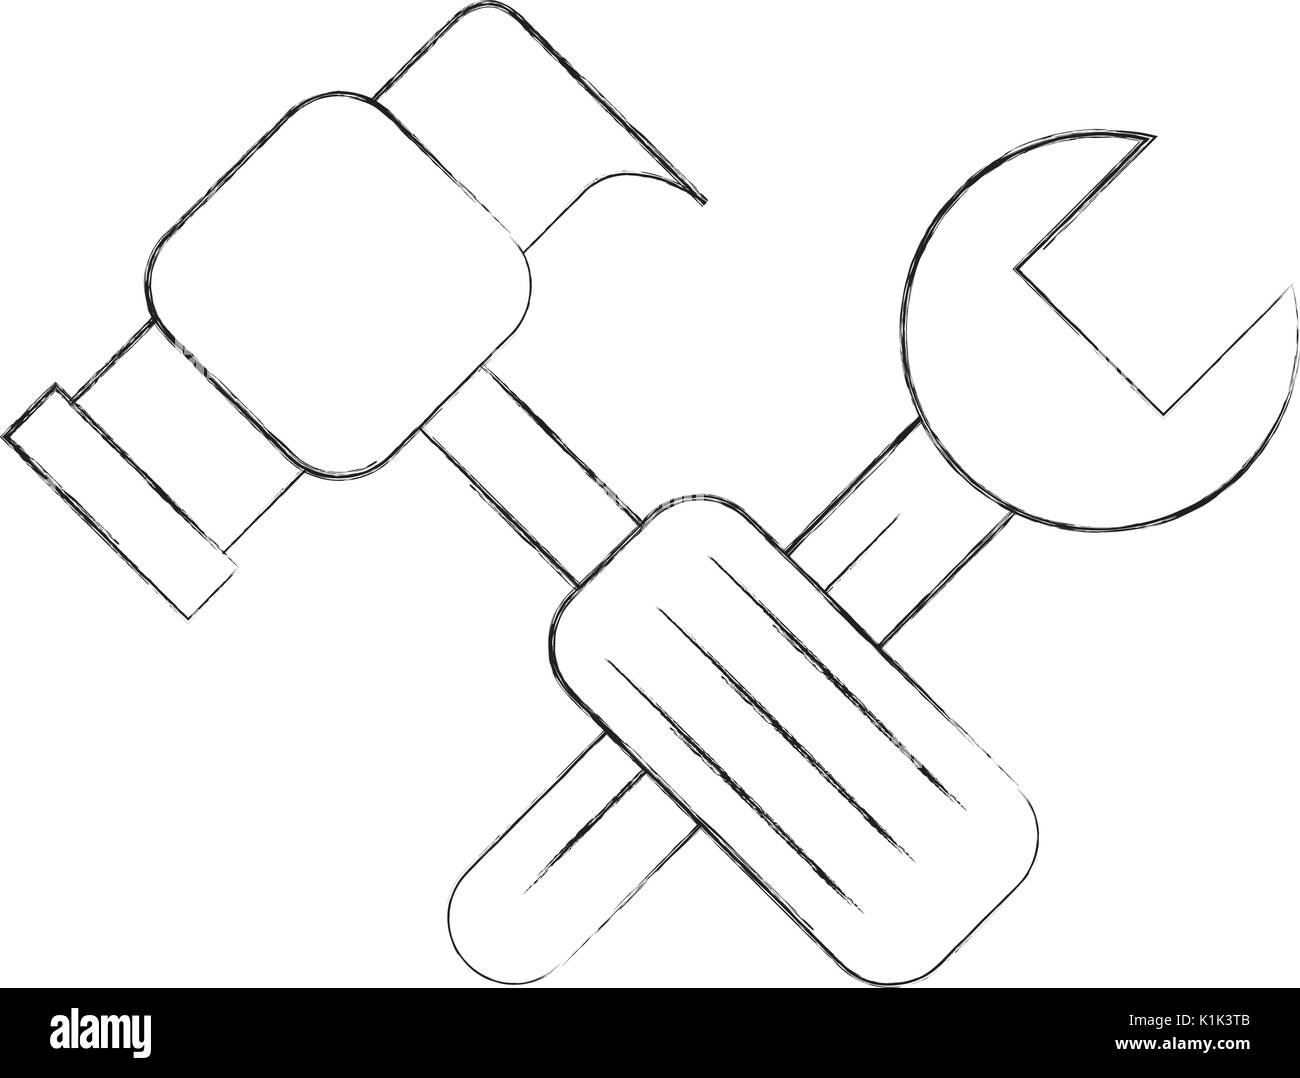 Hammer and wrench icon stock image